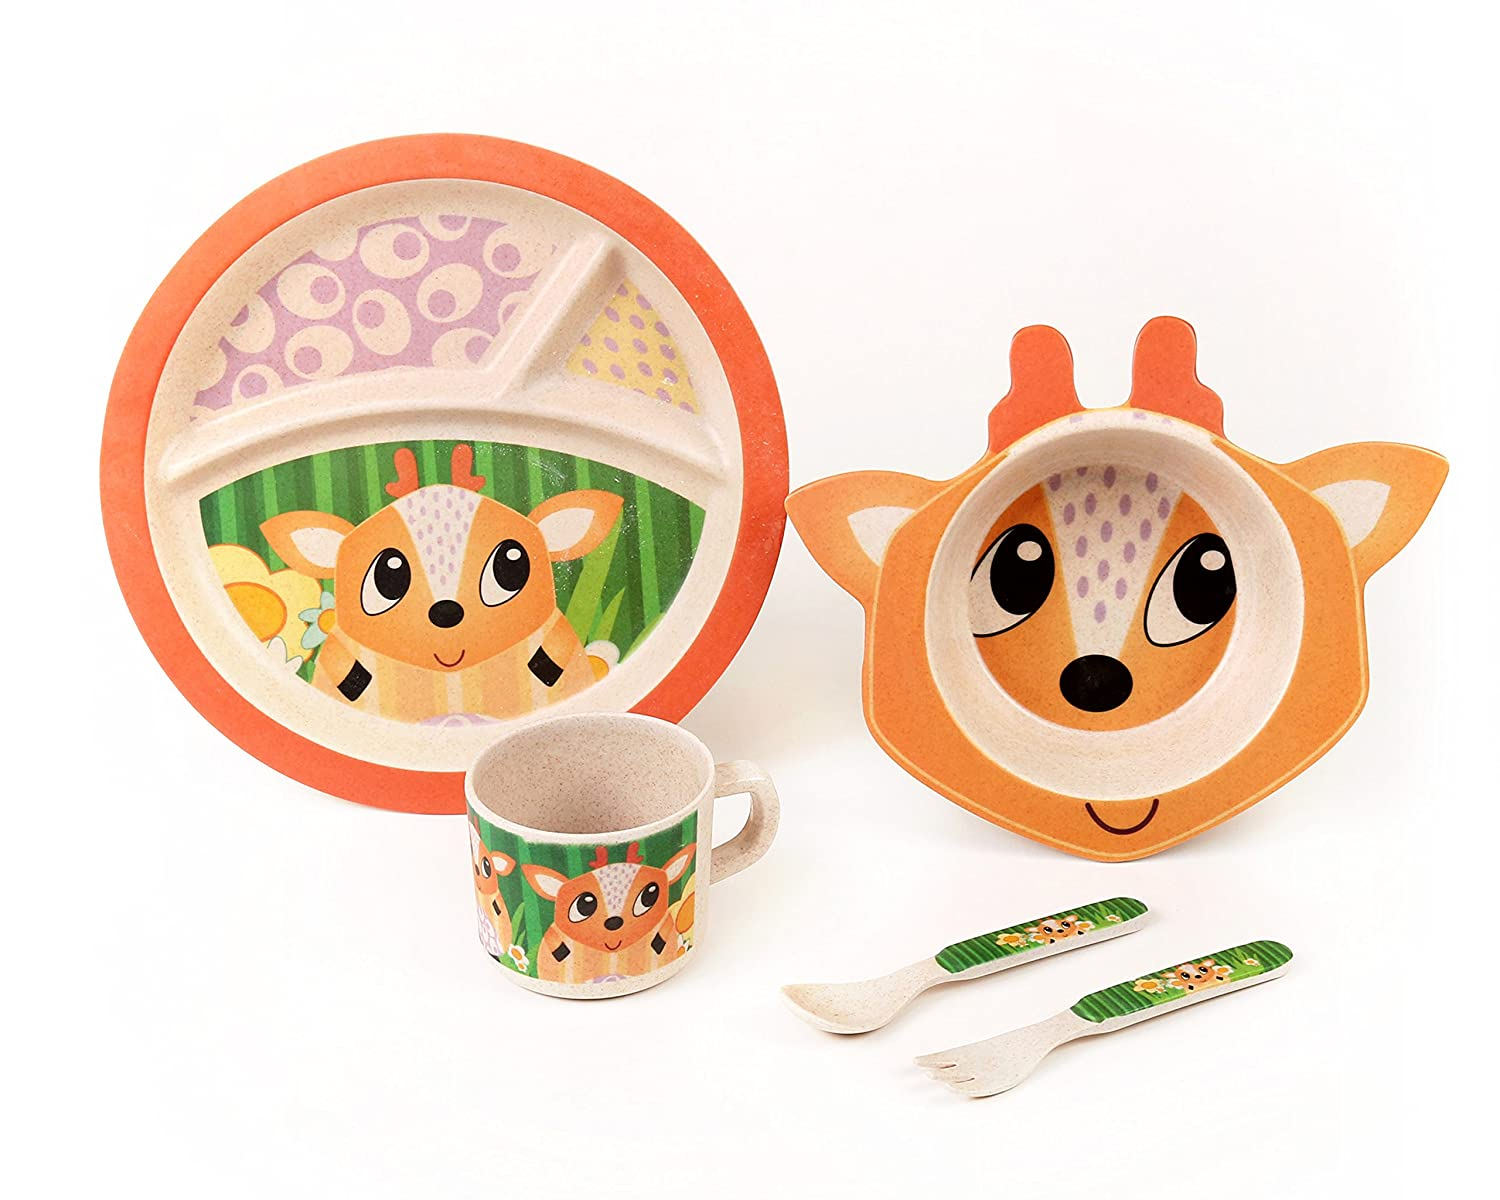 Bamboo Meal Set / Plate set / Dinner set by Green Frog Friends, Eco-friendly Bamboo Dishes, feeding Set for toddlers and Little Kids, Boys and Girls, Deer Character by Green Frog   B01I3X3JA8